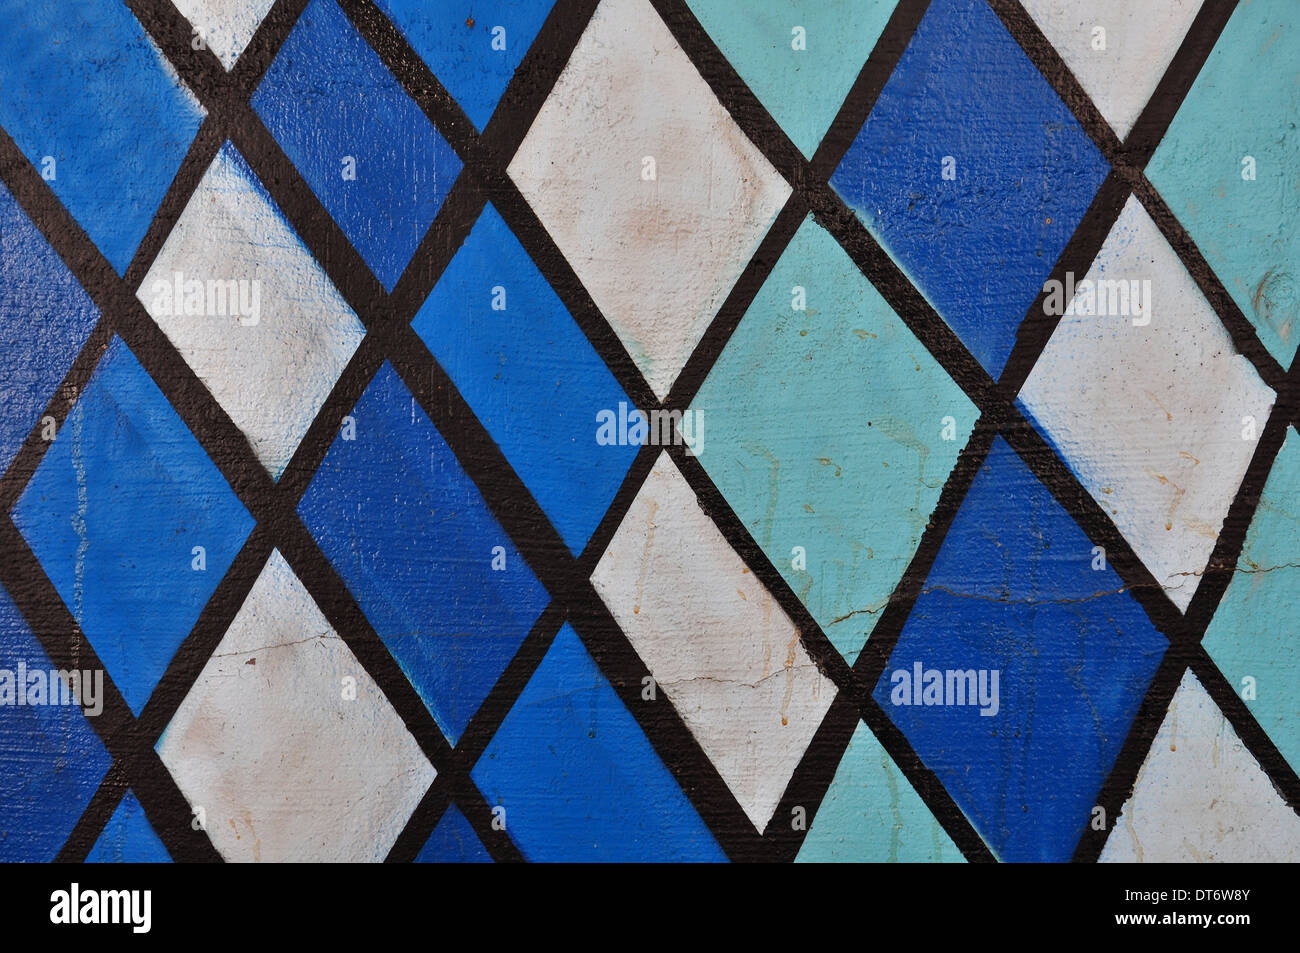 Abstract Paint Pattern Geometric Shapes In Shades Of Blue